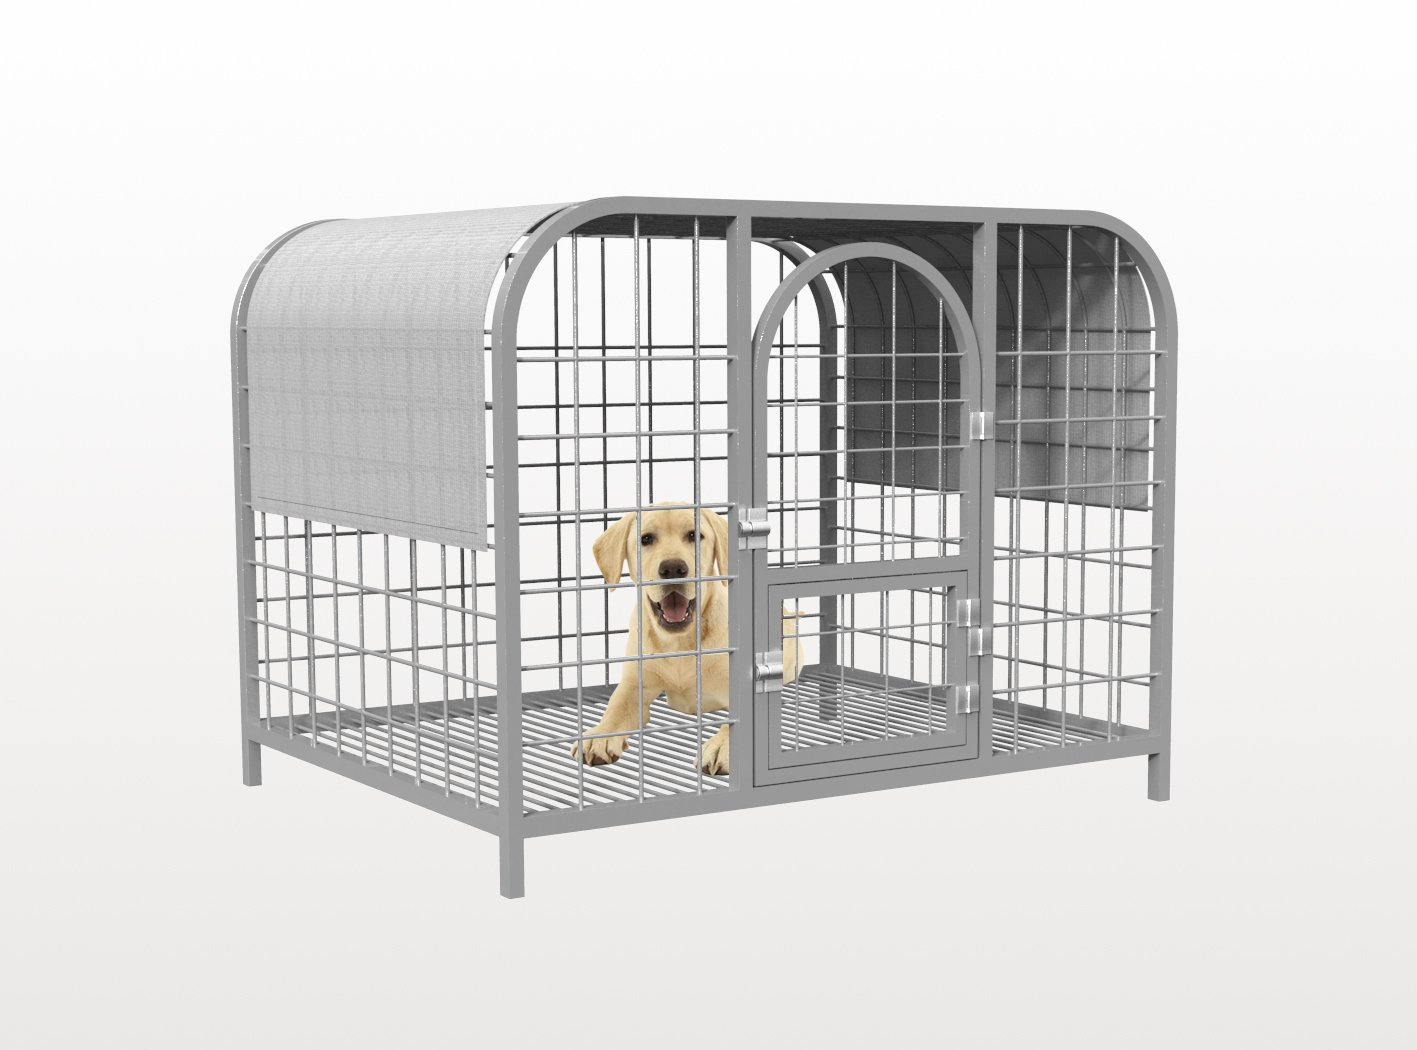 Shatex Dog Kennel Shade Cover, Pet Cage Sunblock Shade Panel With Grommets(Dog Kneel/Pet Cage Not Included) 6x20ft,Gray